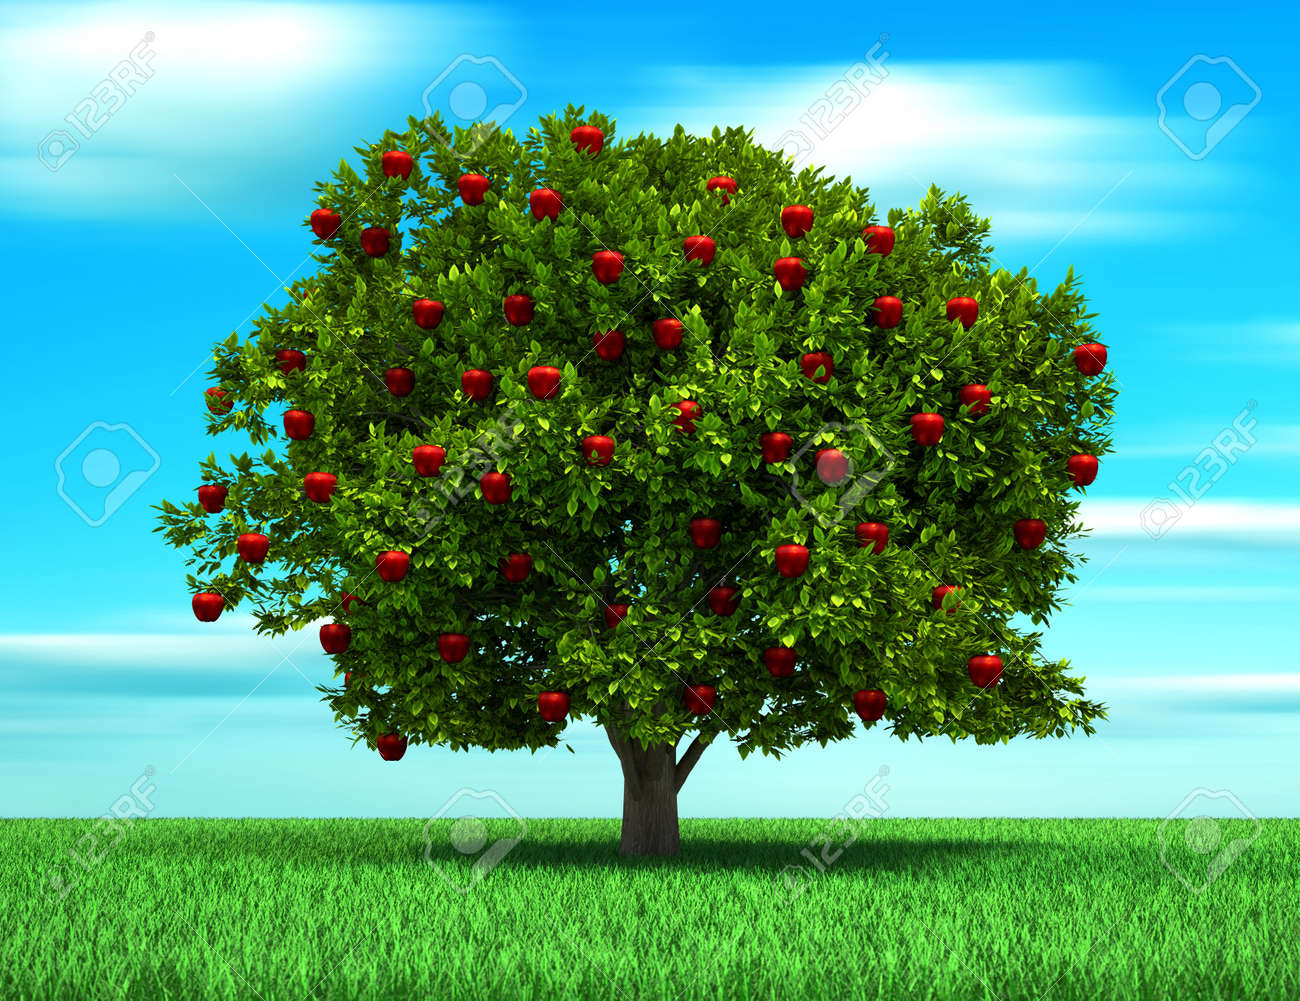 More similar stock images of 3d landscape with fall tree - Apple Tree Tree With Apple Fruits Surreal And Conceptual Look 3d Render Illustration